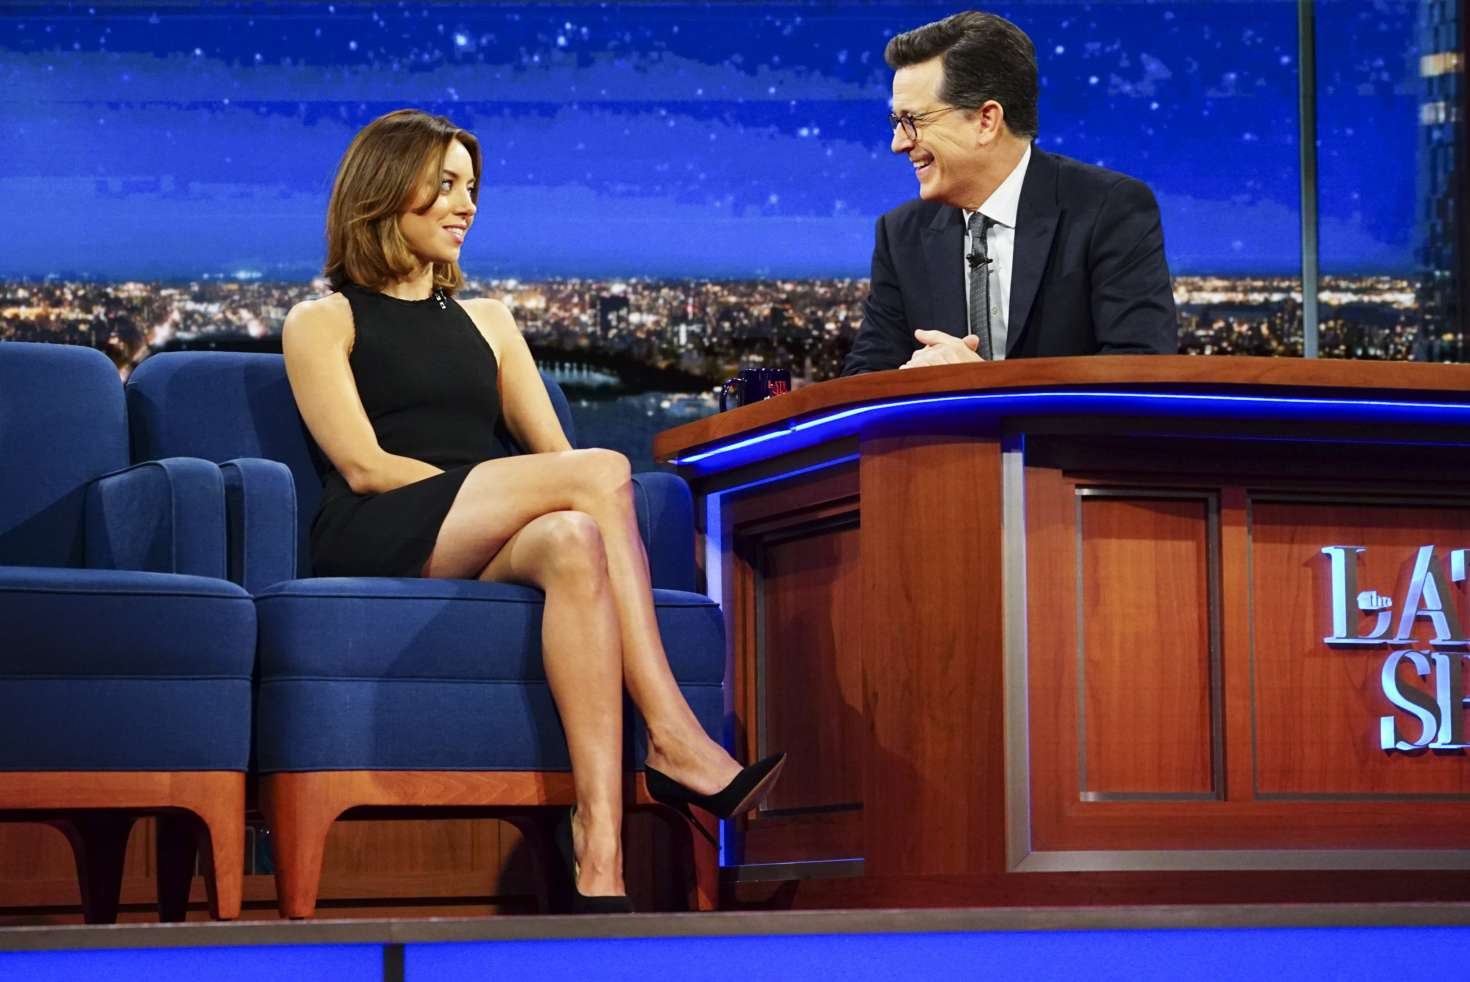 Aubrey Plaza On The Late Show With Stephen Colbert In